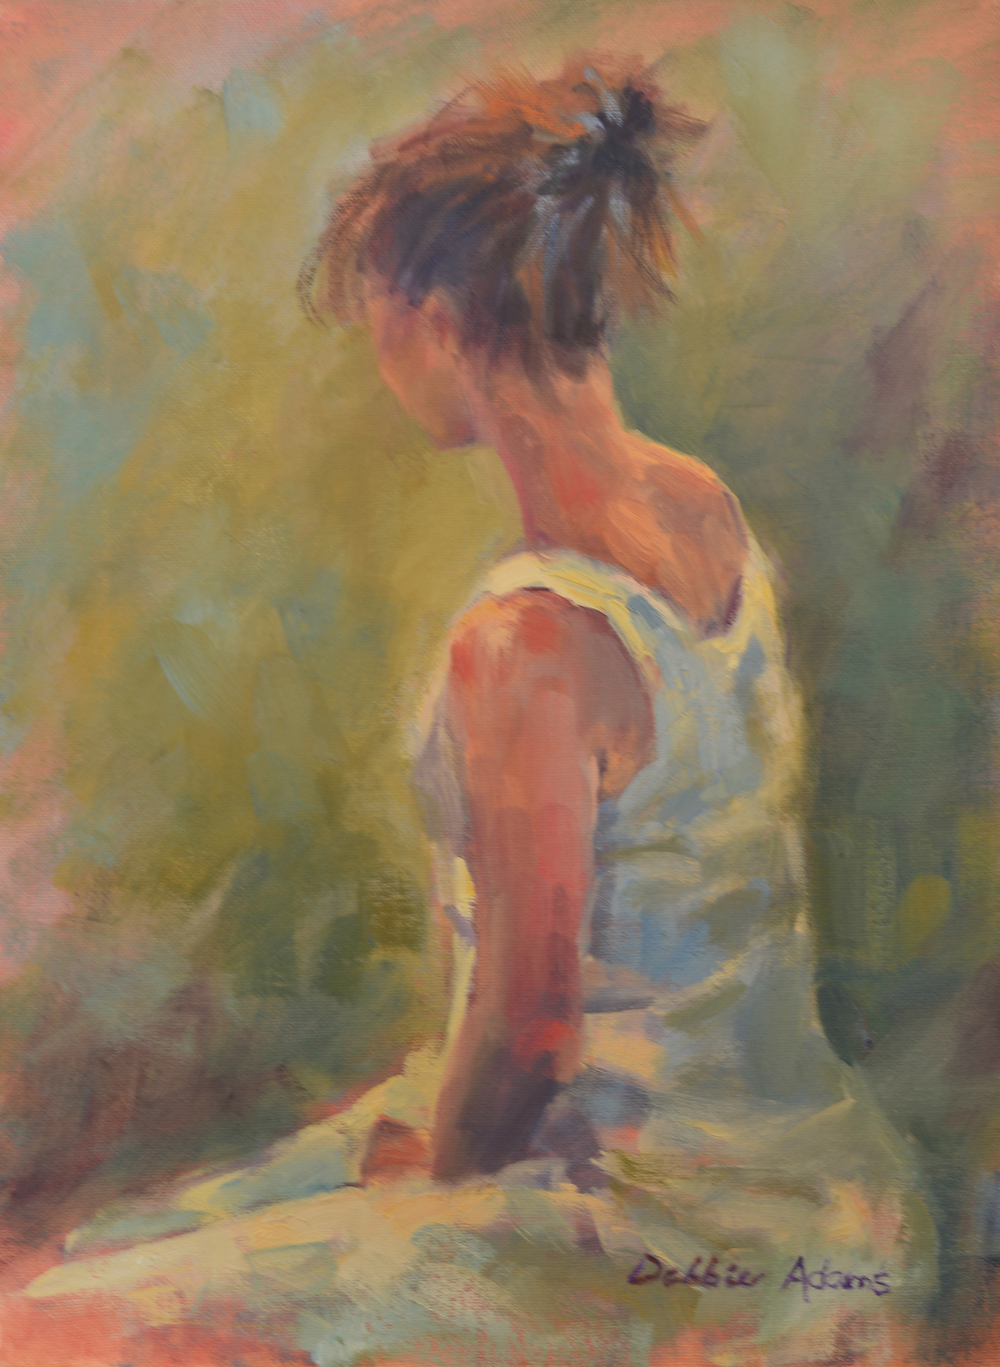 Her White Dress - 16x20 oil